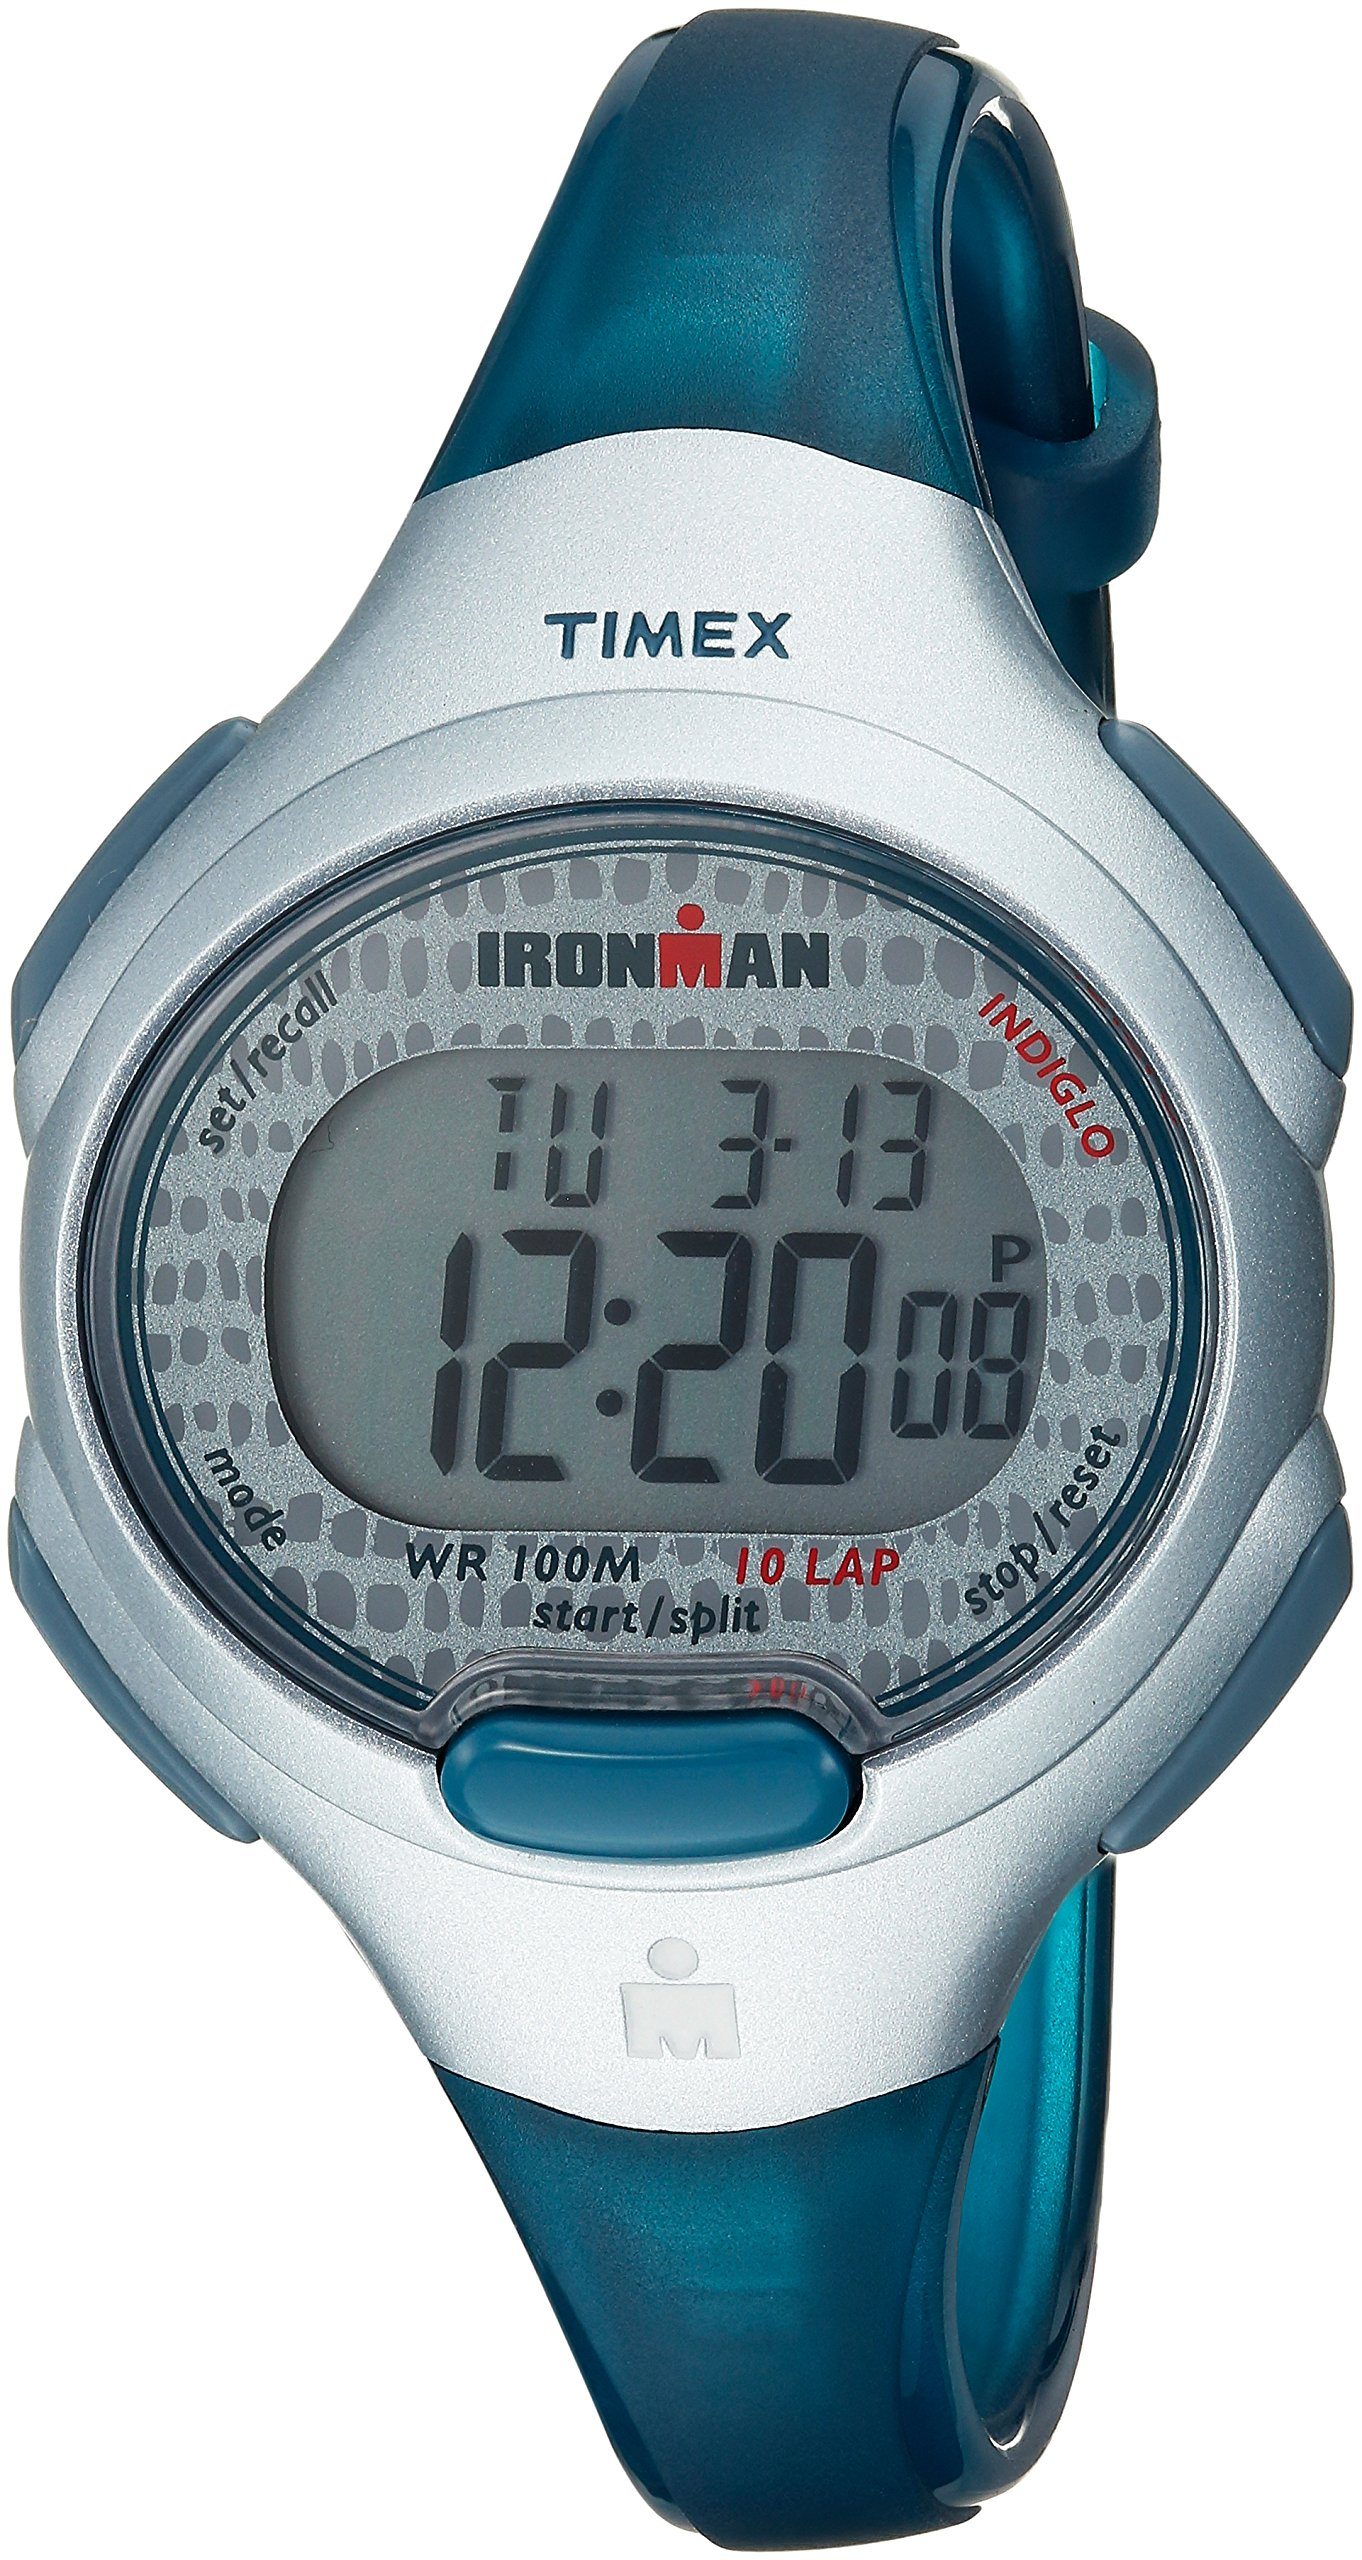 Timex Mid-Size Ironman Essential 10 Watch